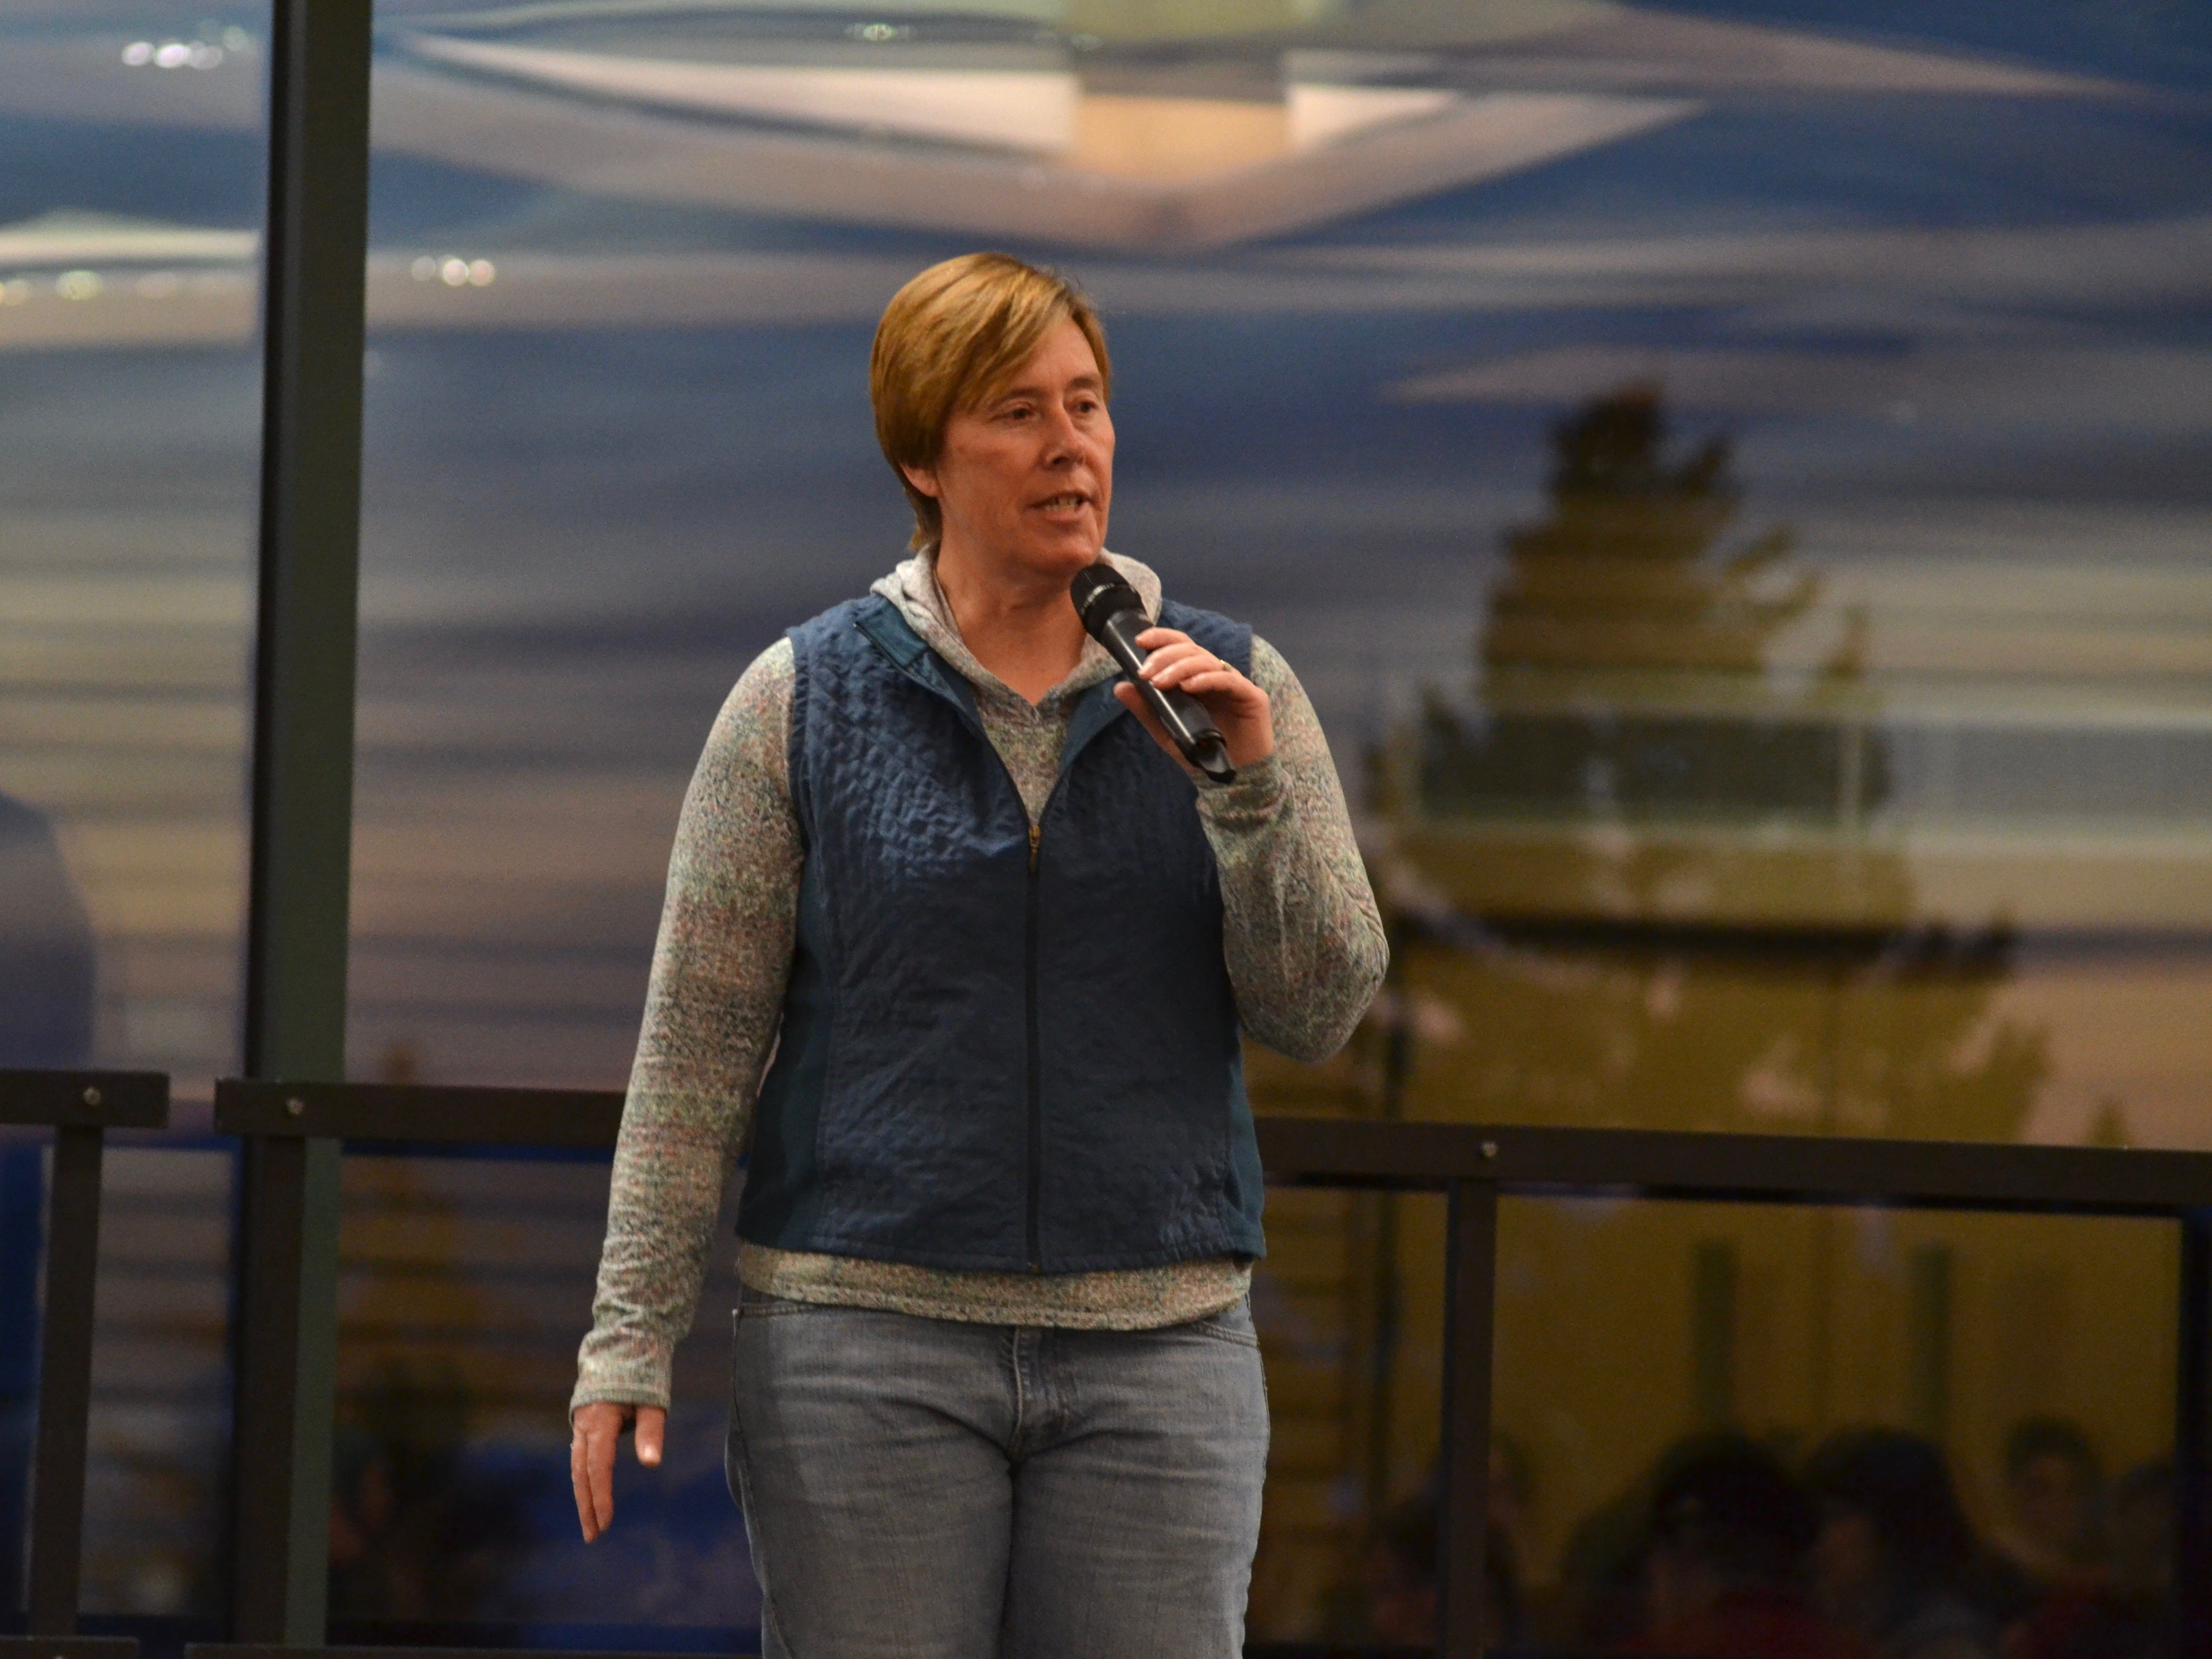 Amanda Crispel, assistant dean for Game Development at Champlain College, spoke in March 2019 at the college's Women in Games networking  alumni event.